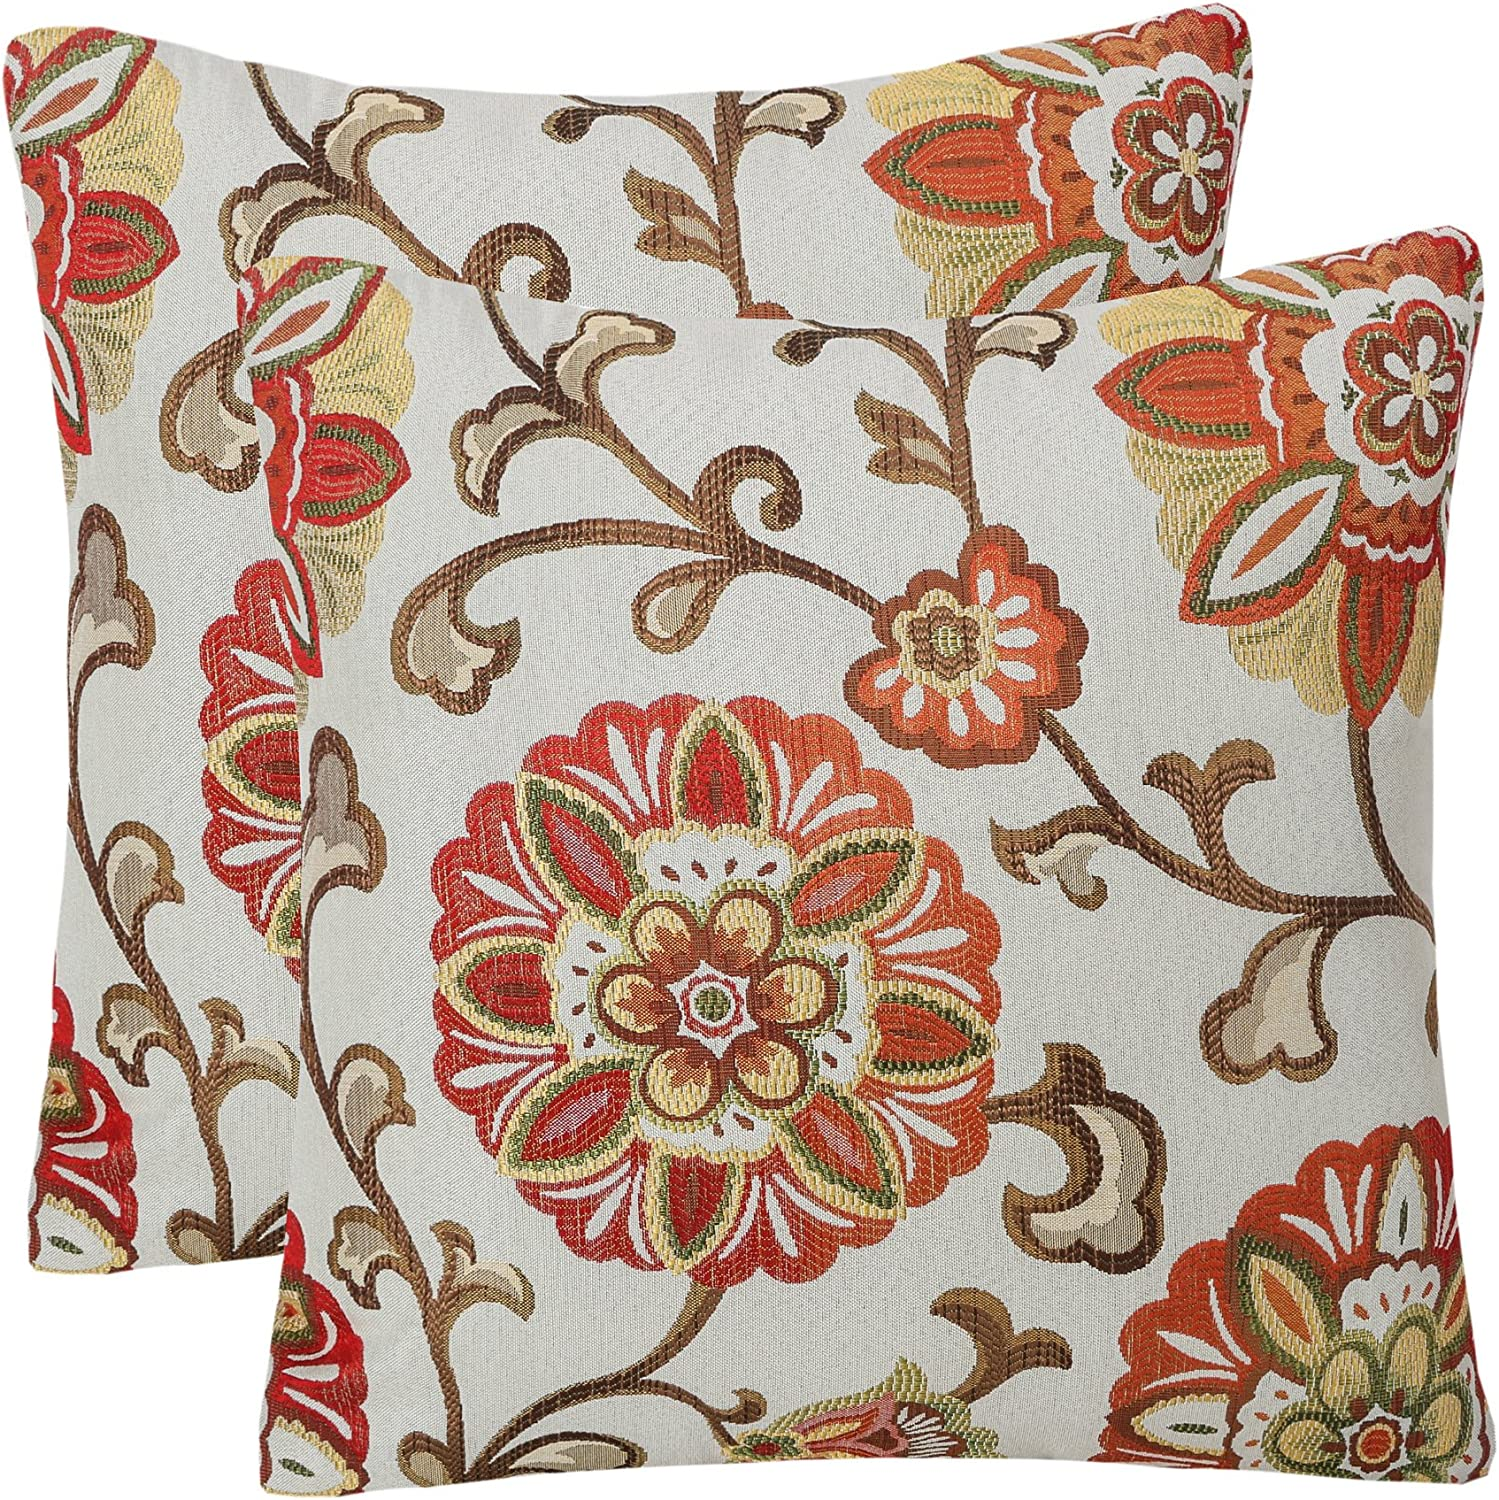 Cream ivory grey yellow brown modern floral leaf designer throw pillow cover 19 inch square with corded edge